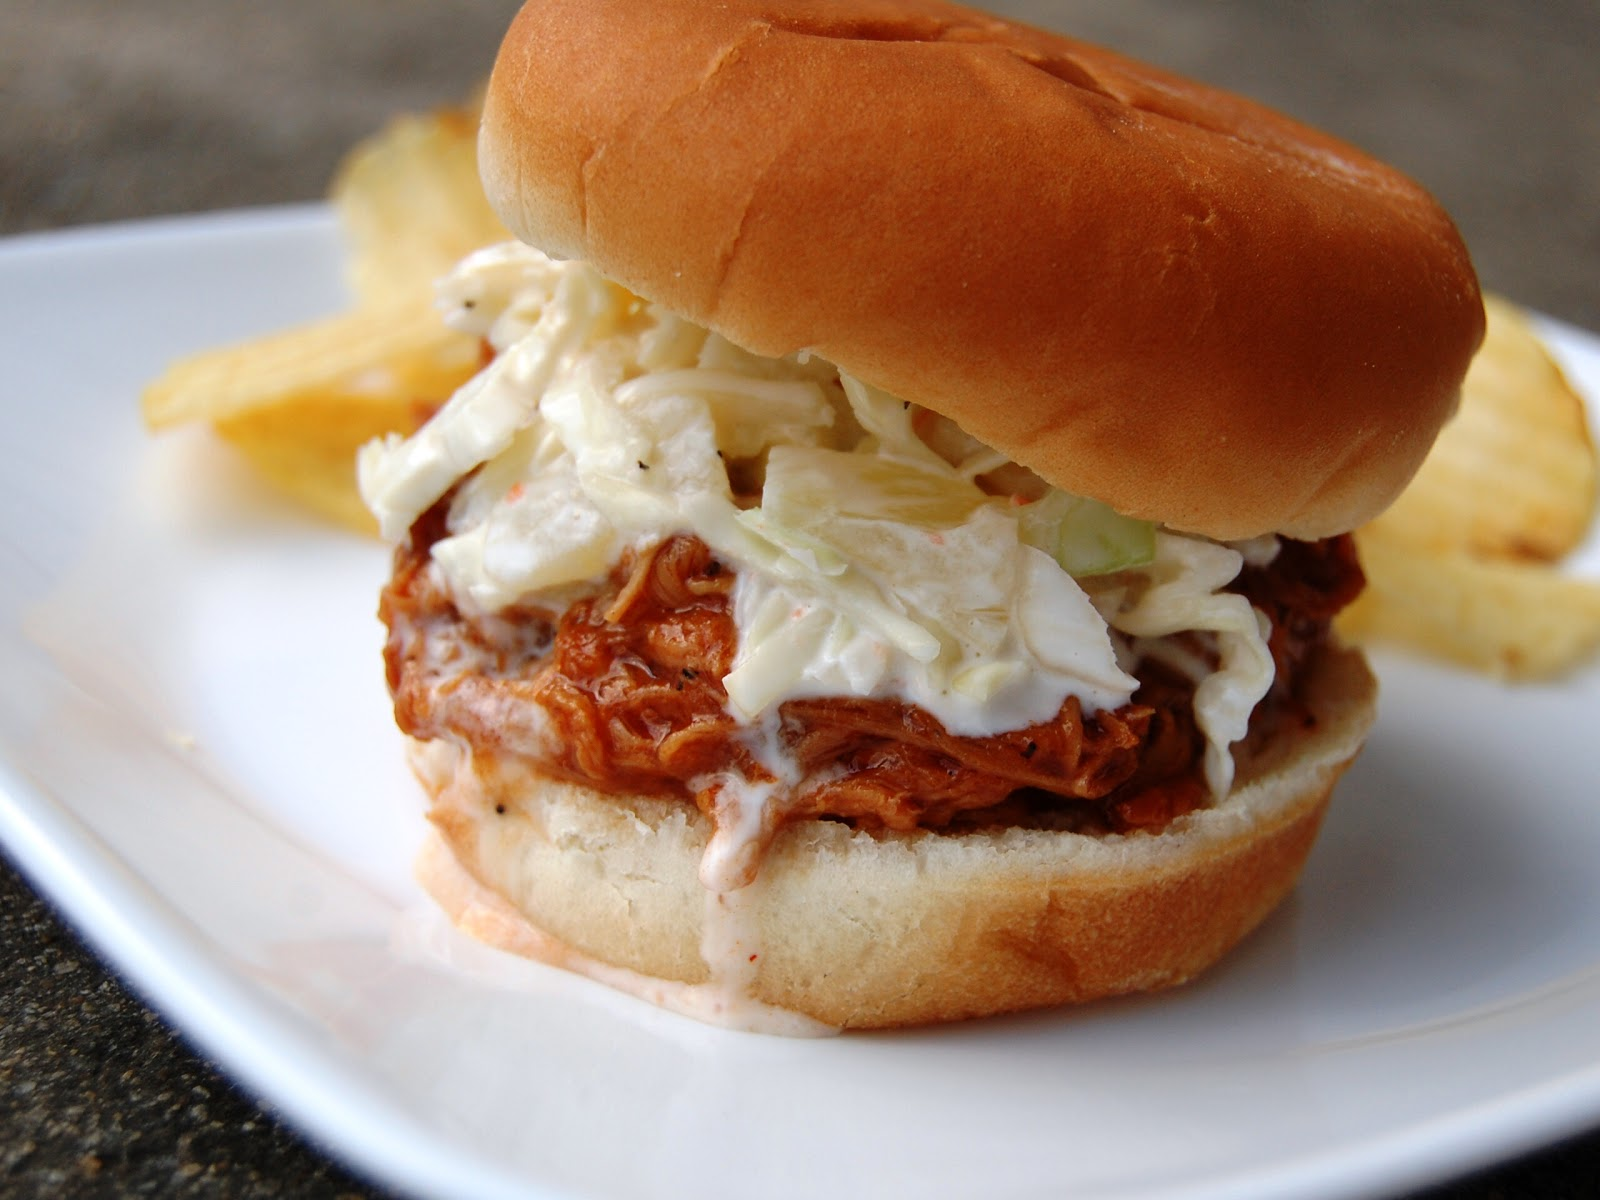 ... Craves: Pineapple BBQ Pulled Pork Sandwiches with Pineapple Coleslaw